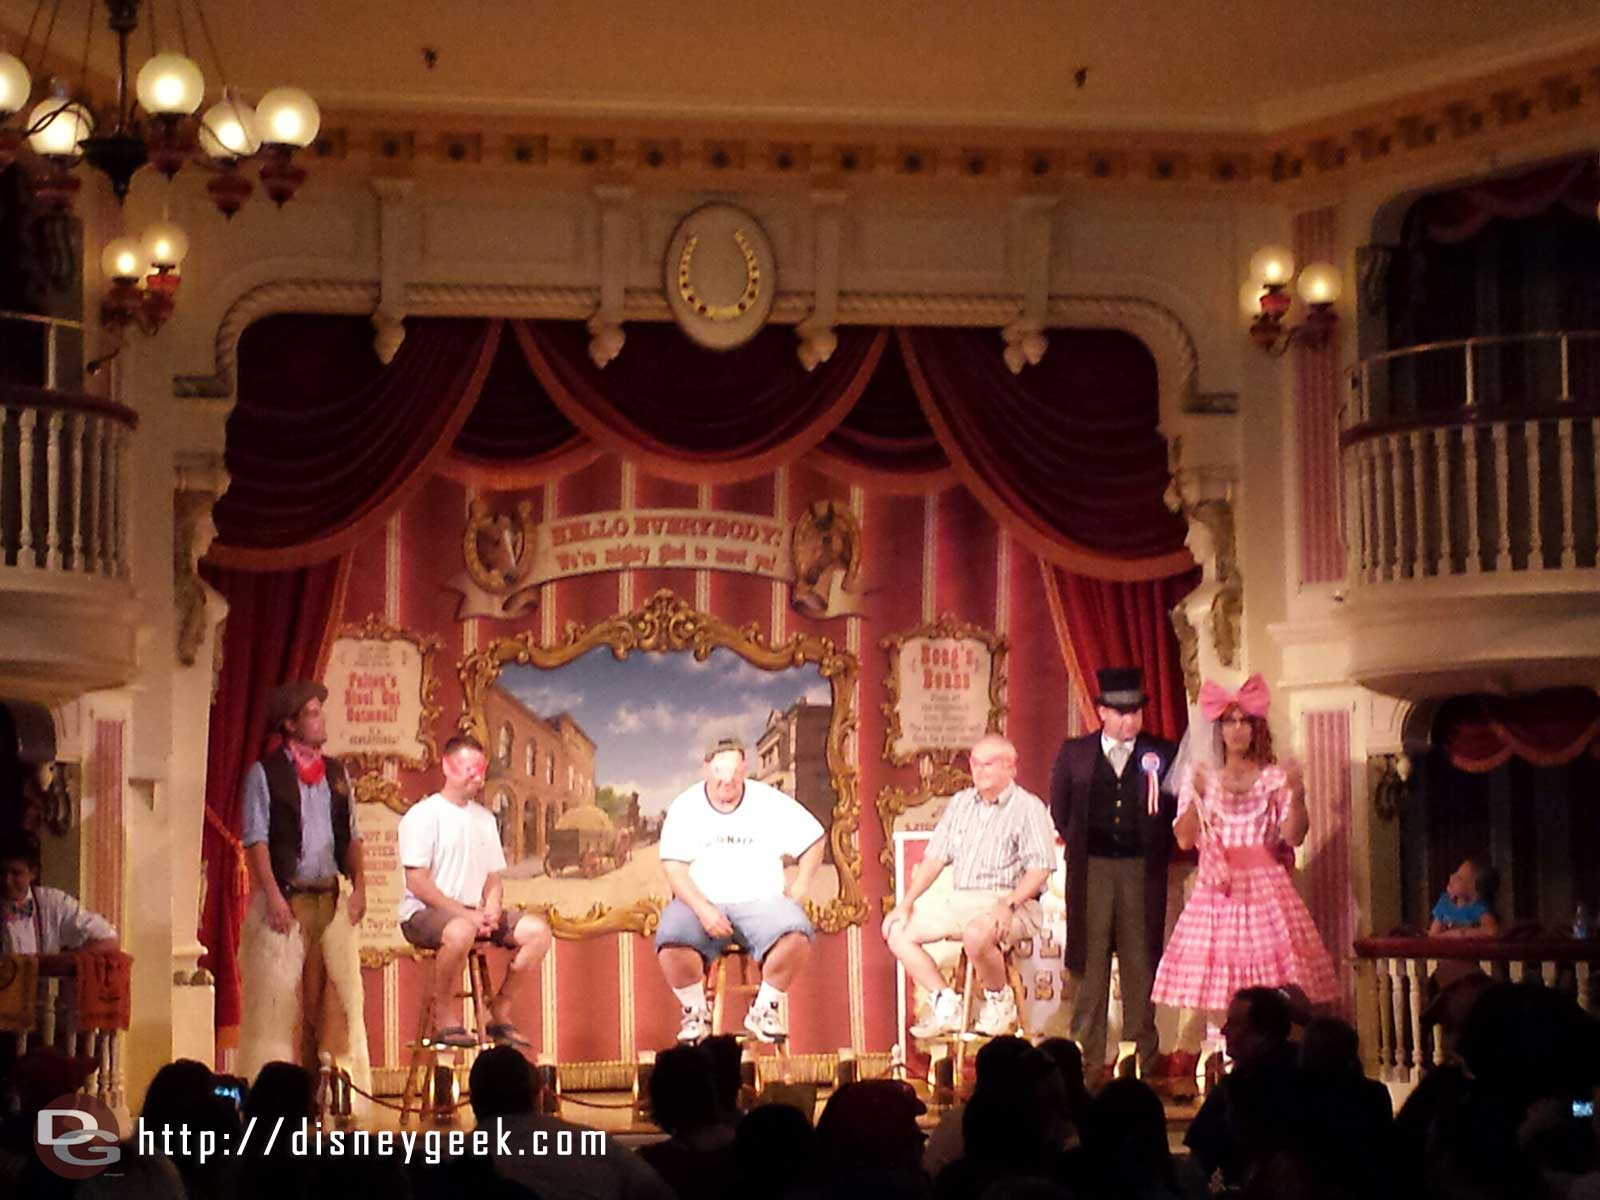 The Laughingstock Co has moved back into the Golden Horseshoe #Disneyland